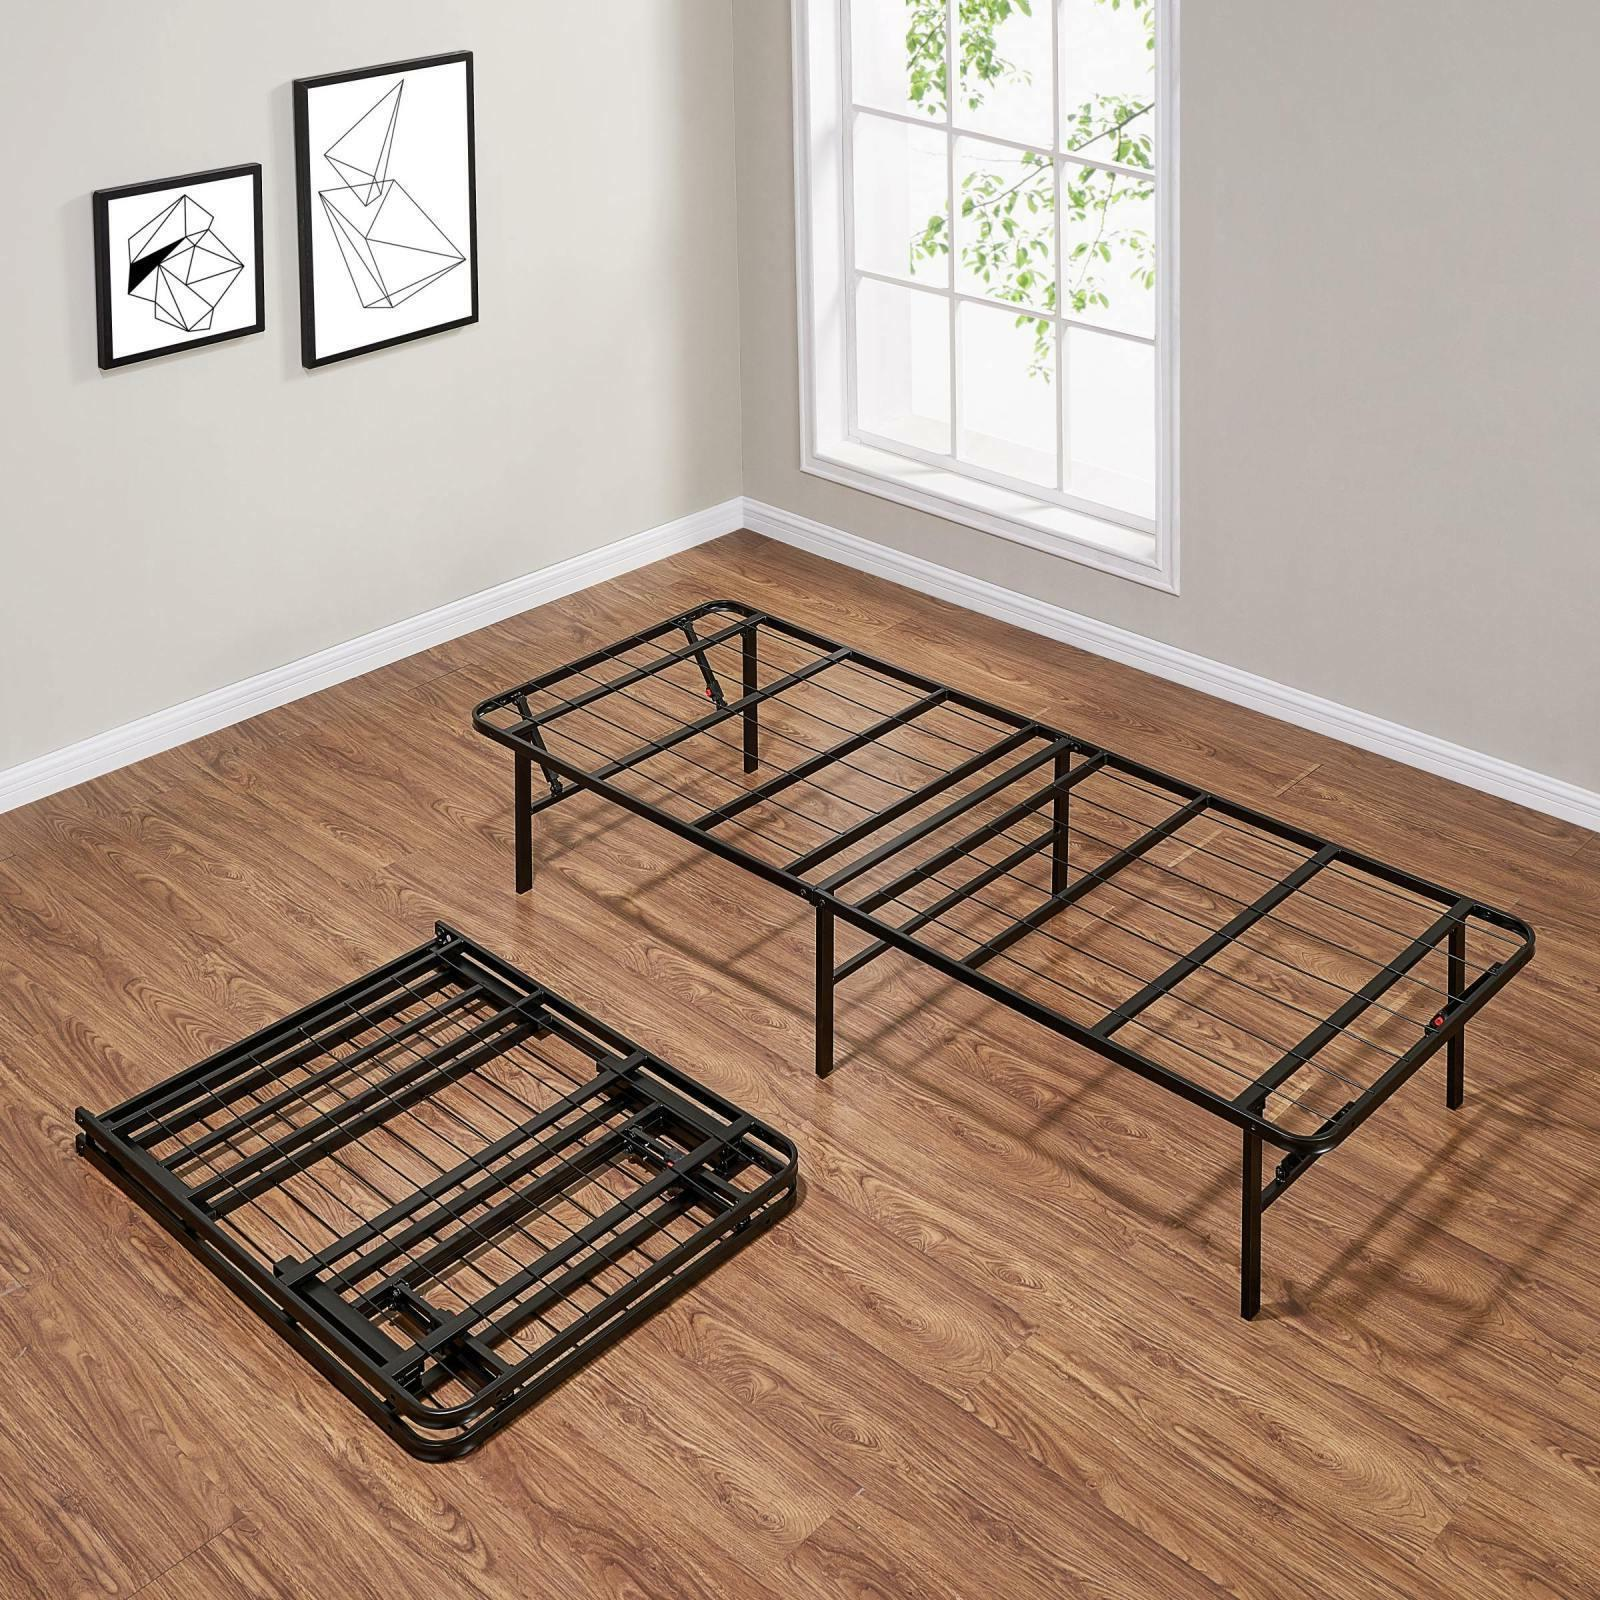 Queen Foldable Bed Foundation High Heavy